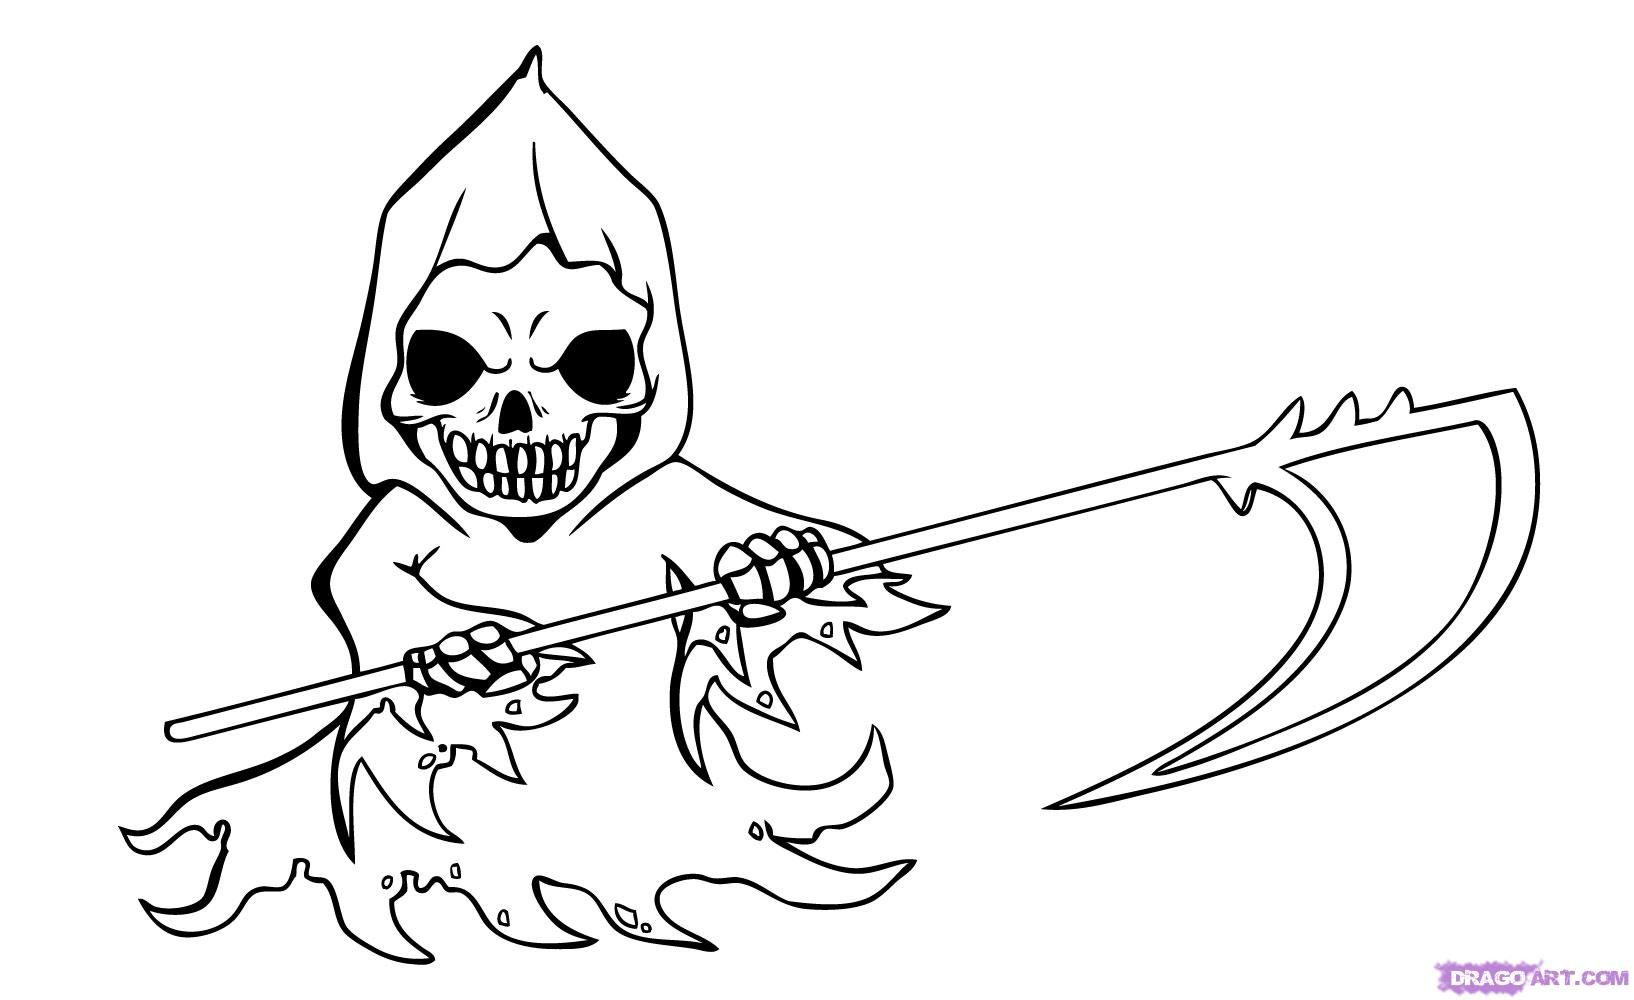 Uncategorized How To Draw A Grim Reaper image result for grim reaper drawing kids collab with nick kids